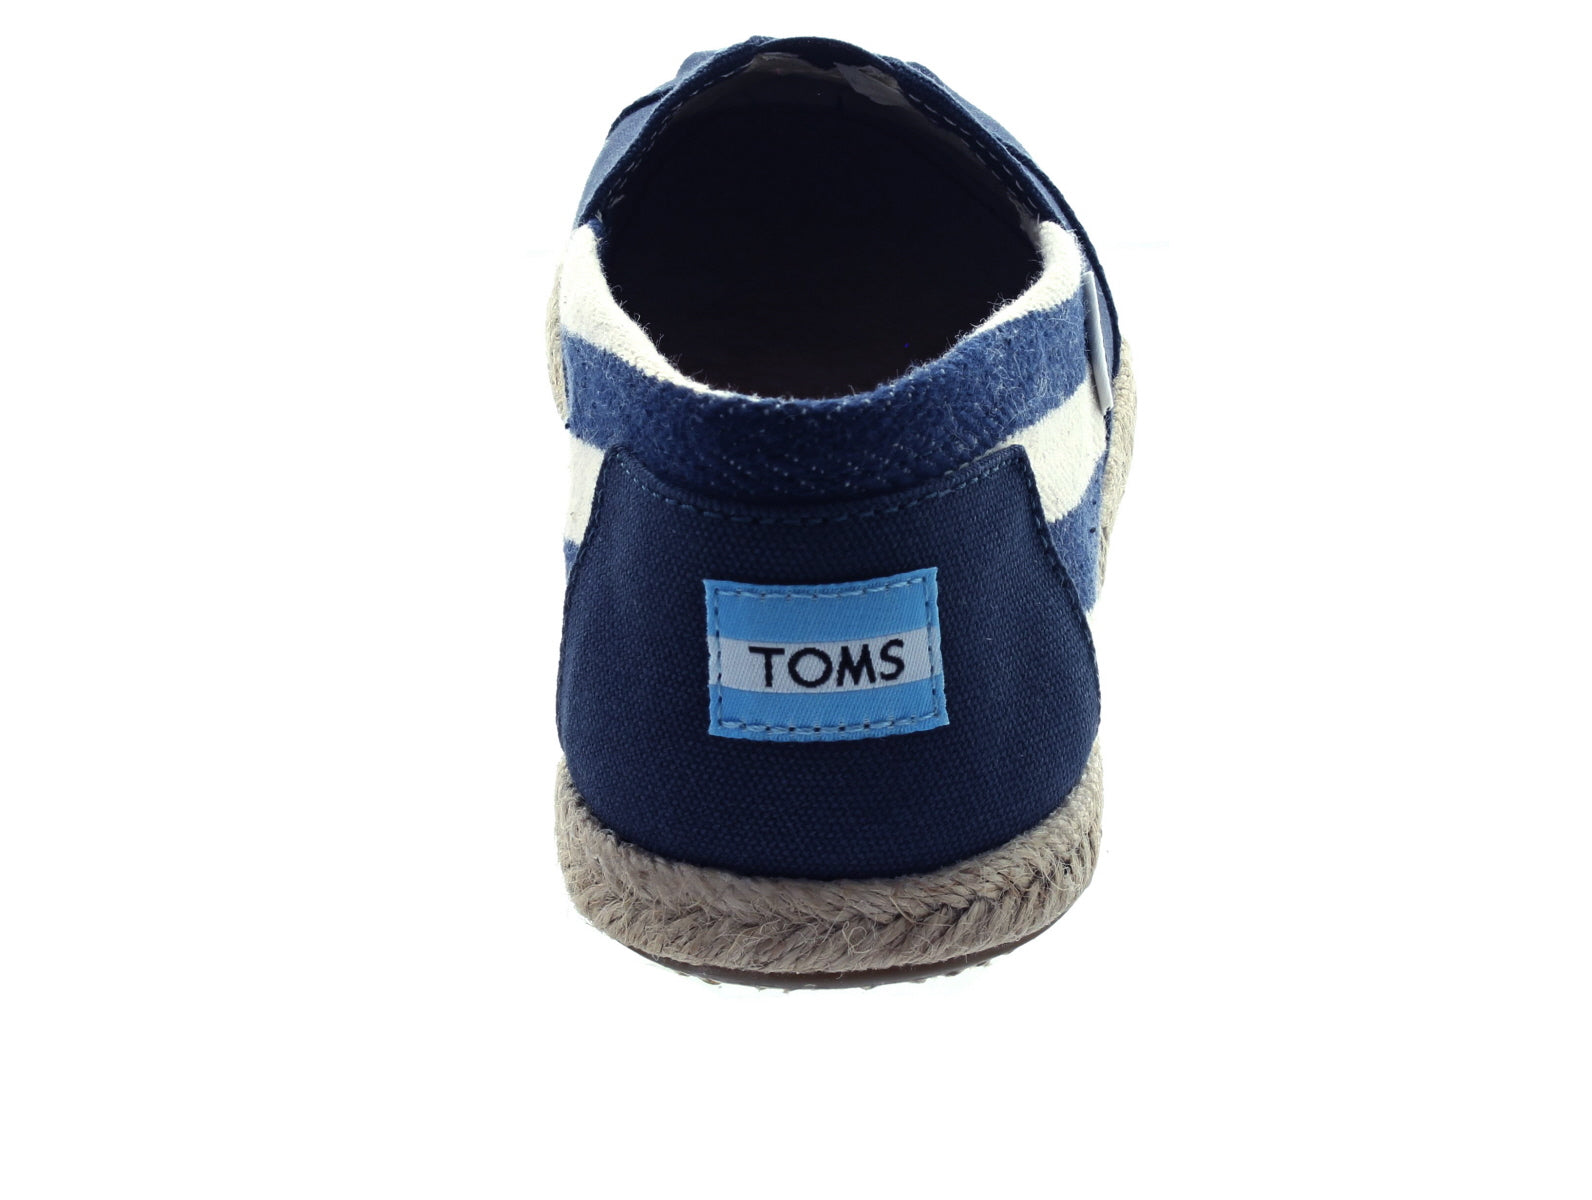 Toms Navy Stripe Canvas 10005419 in Navy back view